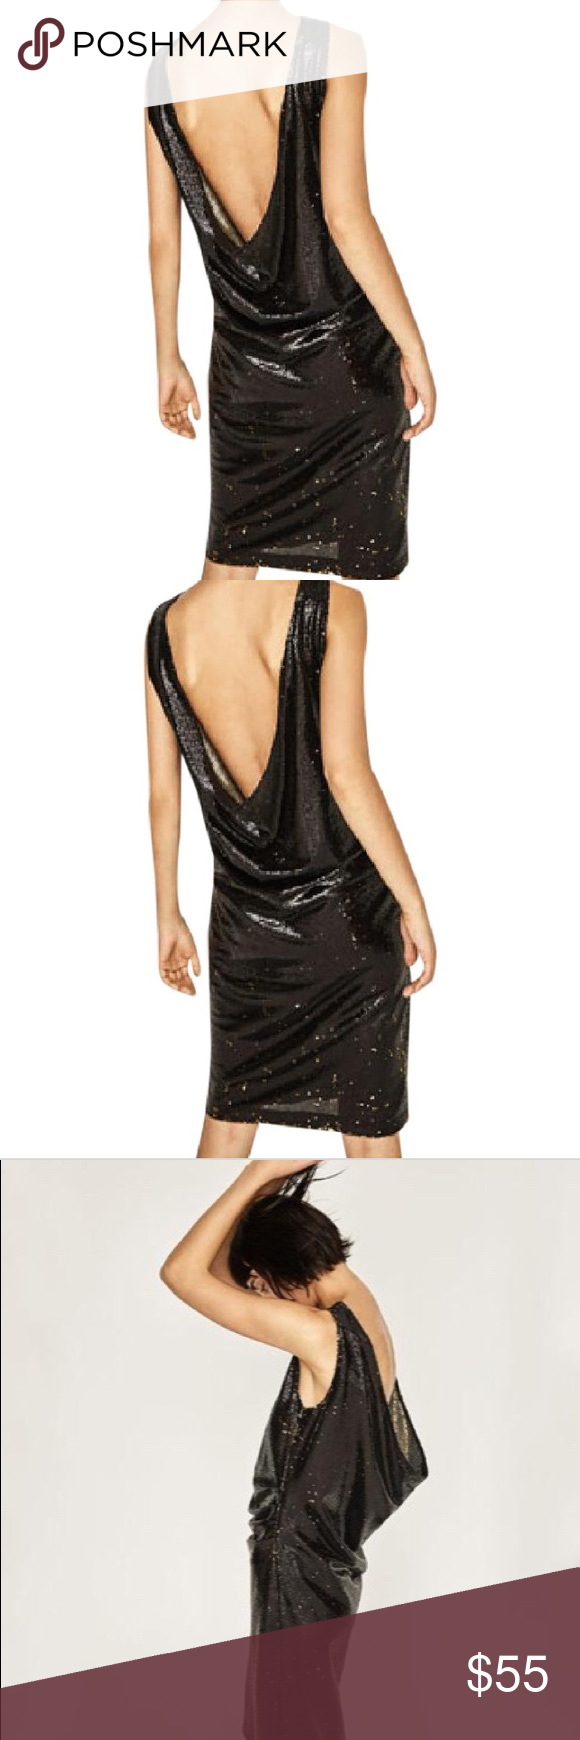 d8a5fe441e Zara Black Gold Sequined open back dress NET Sz S Gorgeous Open Back Tube  Dress Fully lined